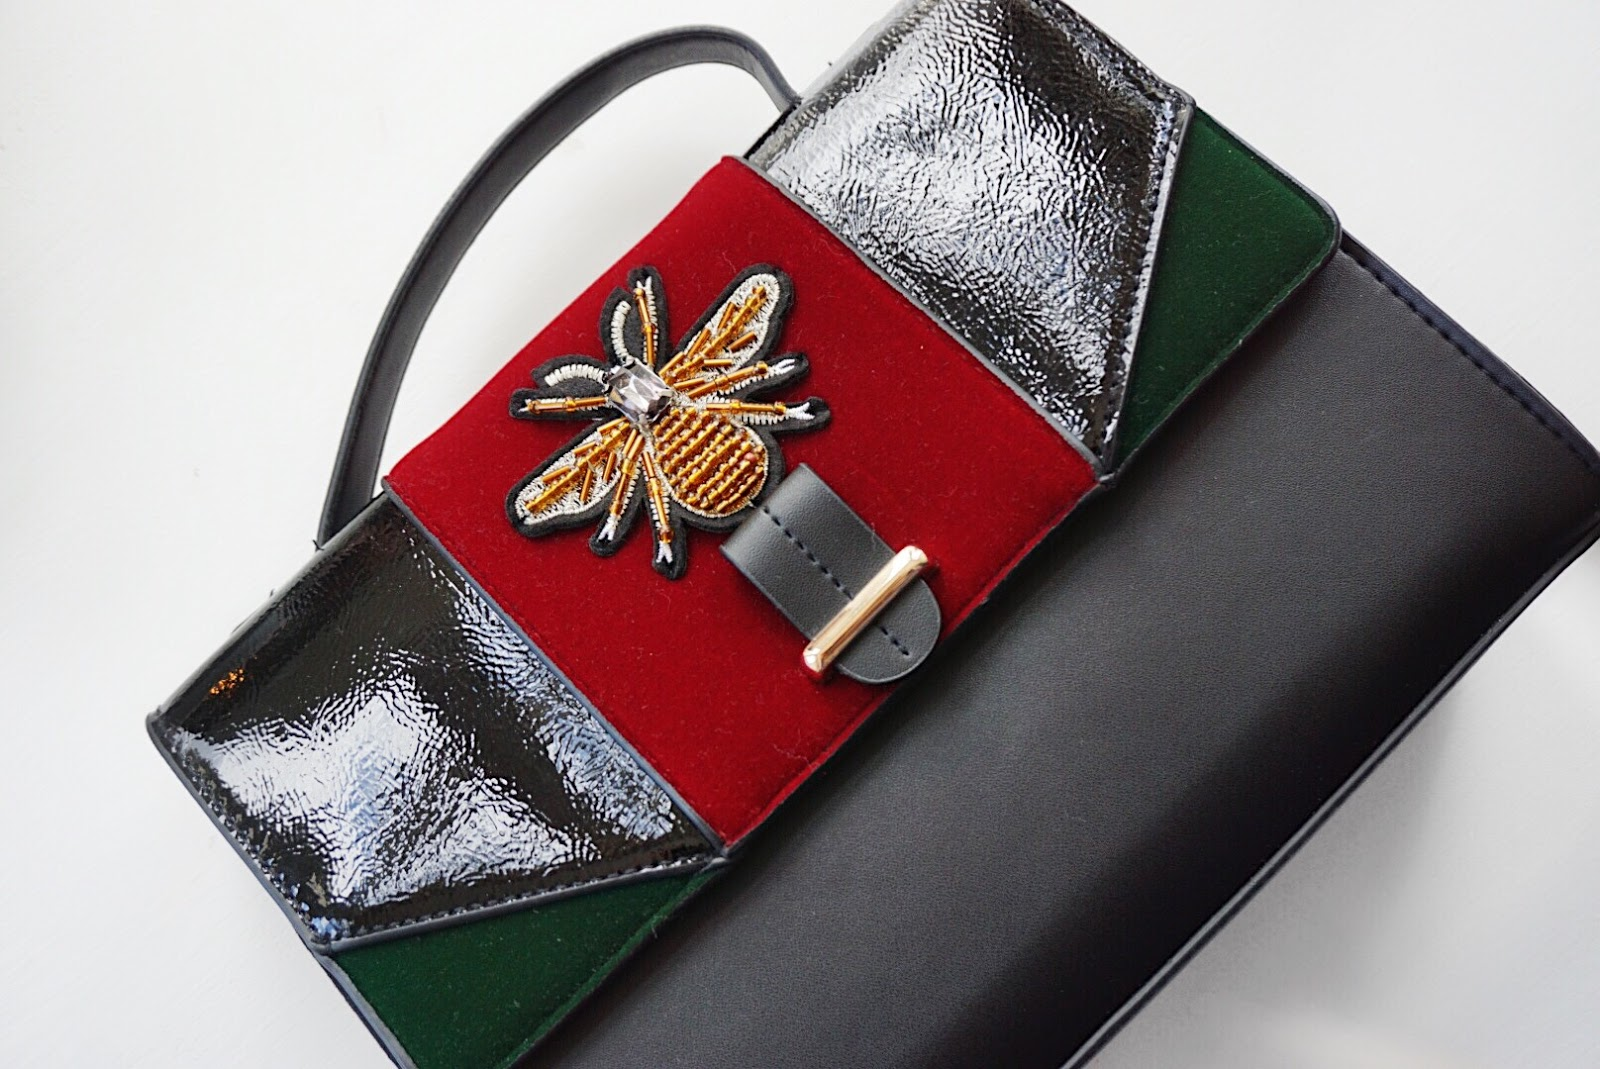 16c601b1d192 Gucci Bag Dupes Uk | Stanford Center for Opportunity Policy in Education